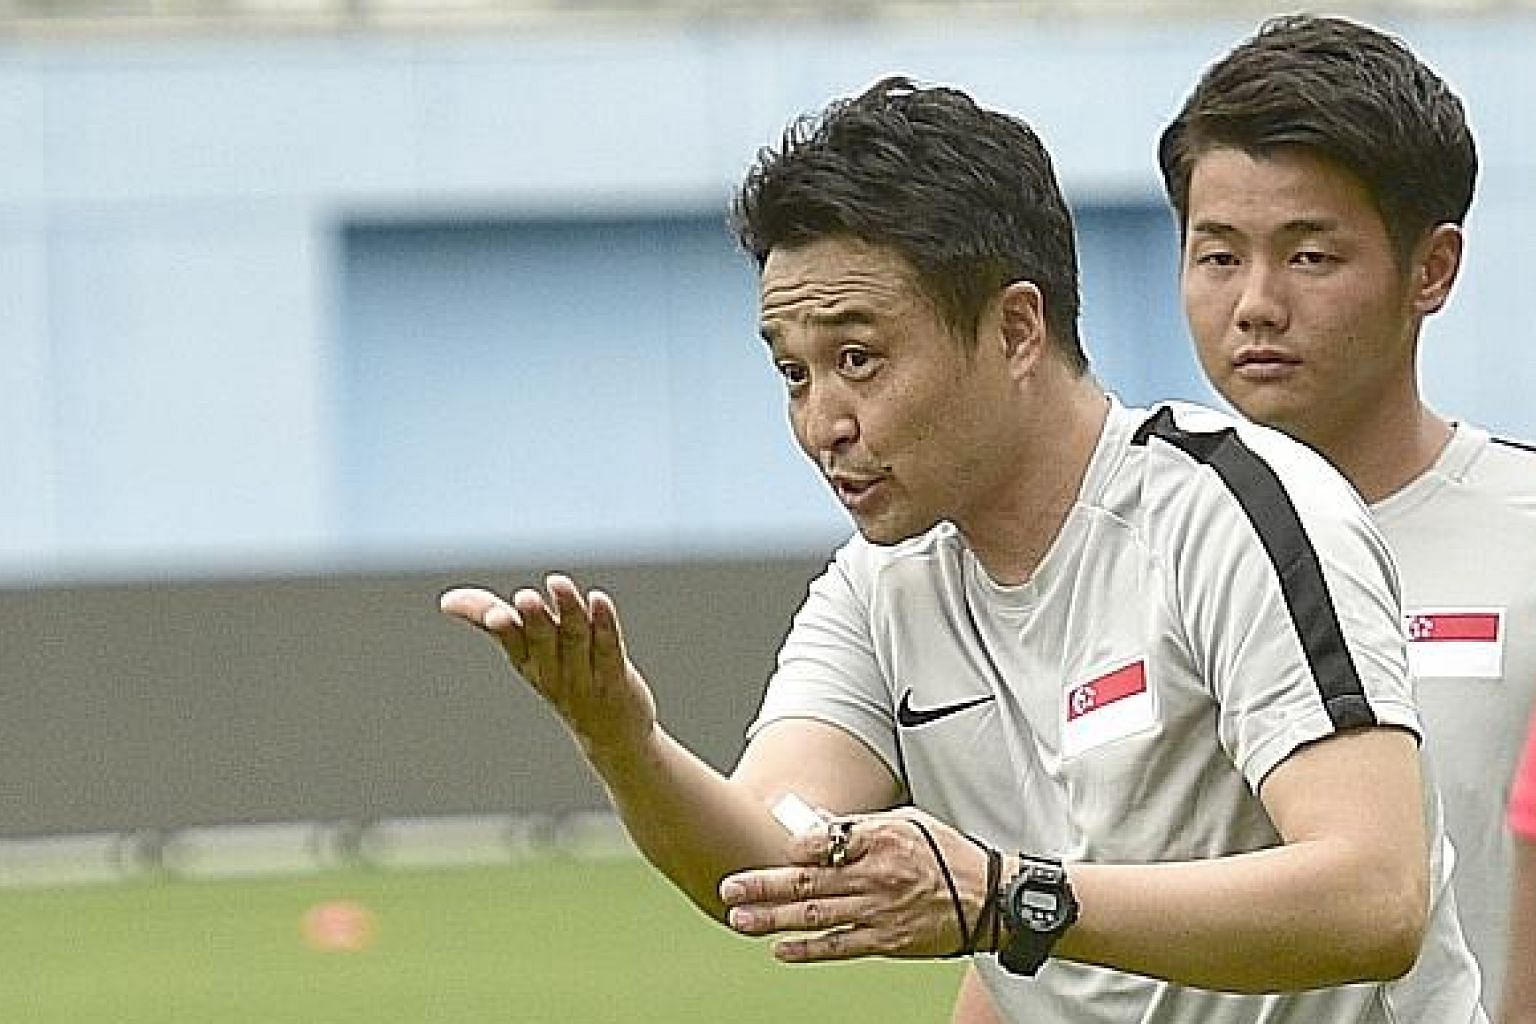 New Singapore football coach Tatsuma Yoshida, with translator Ryo Ishibashi, during his first training session with the players.